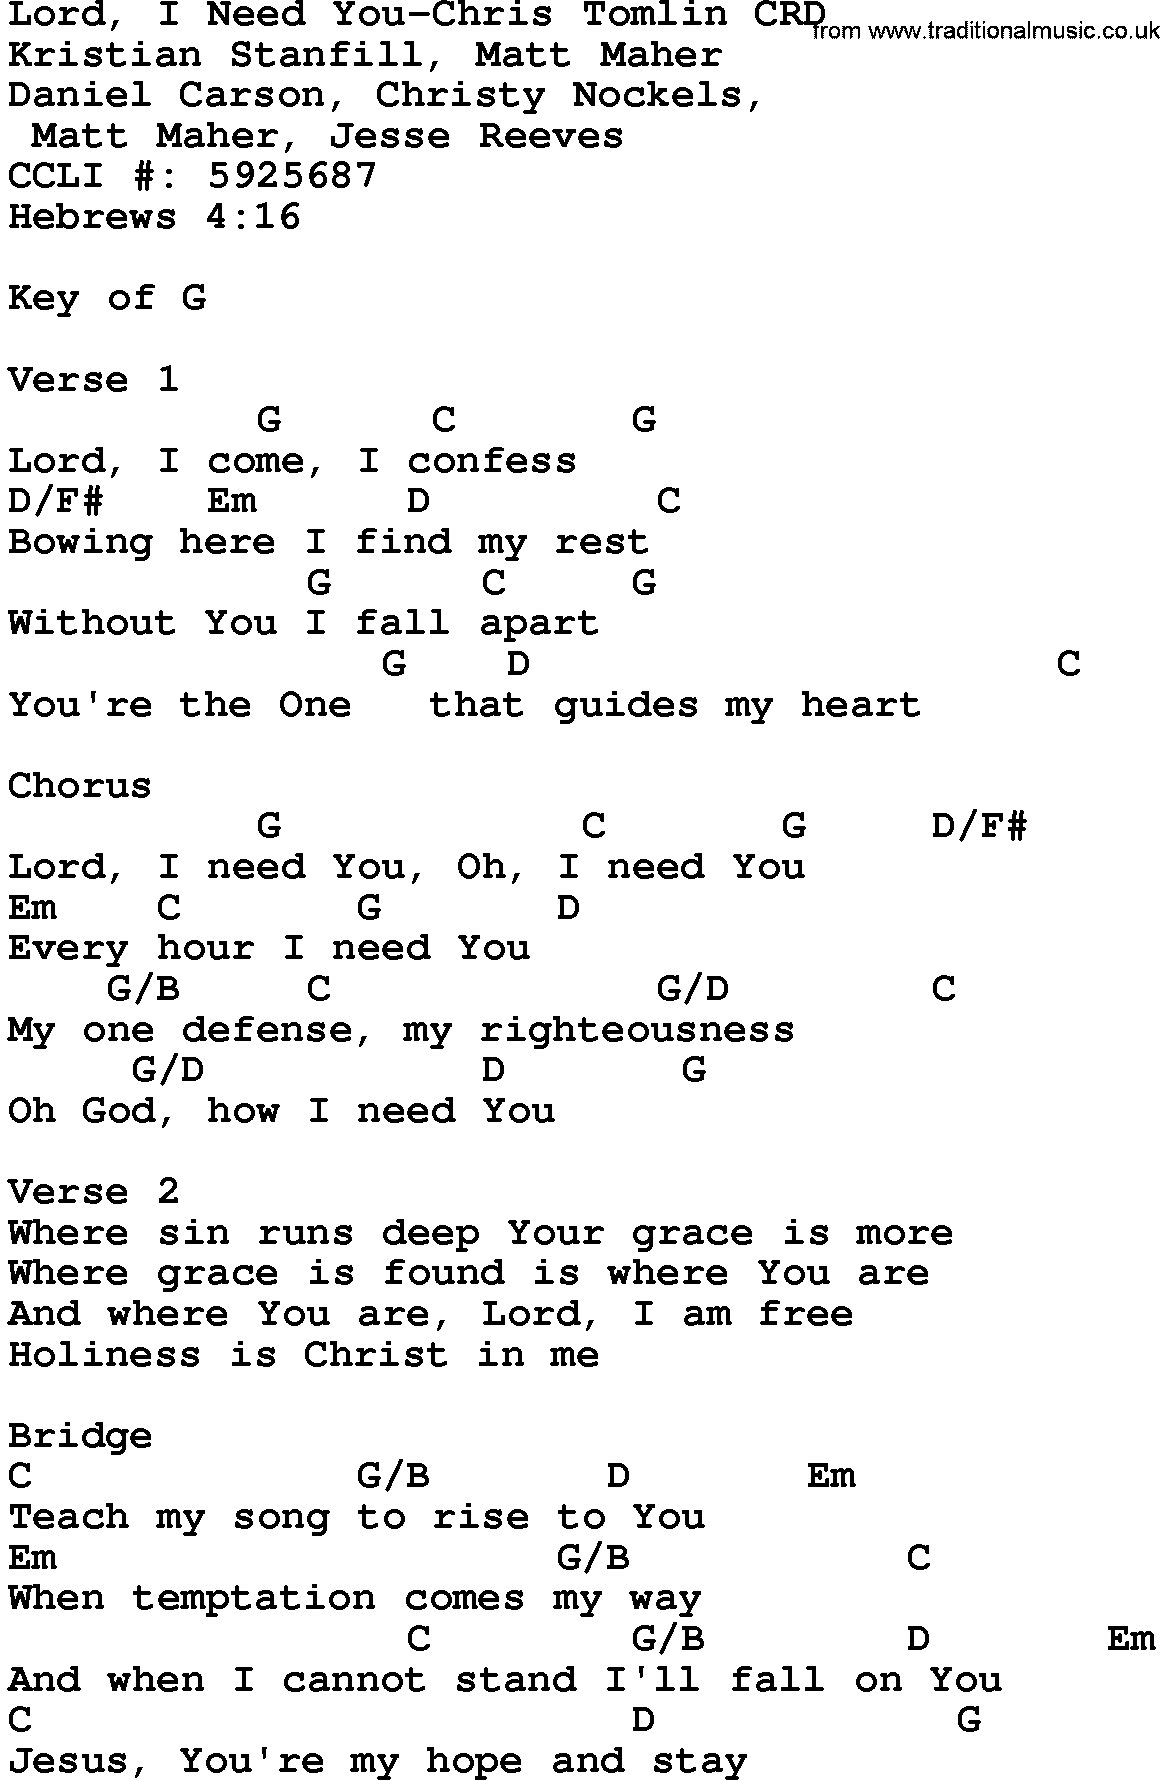 gospel song lord i need you chris tomlin lyrics and chords more